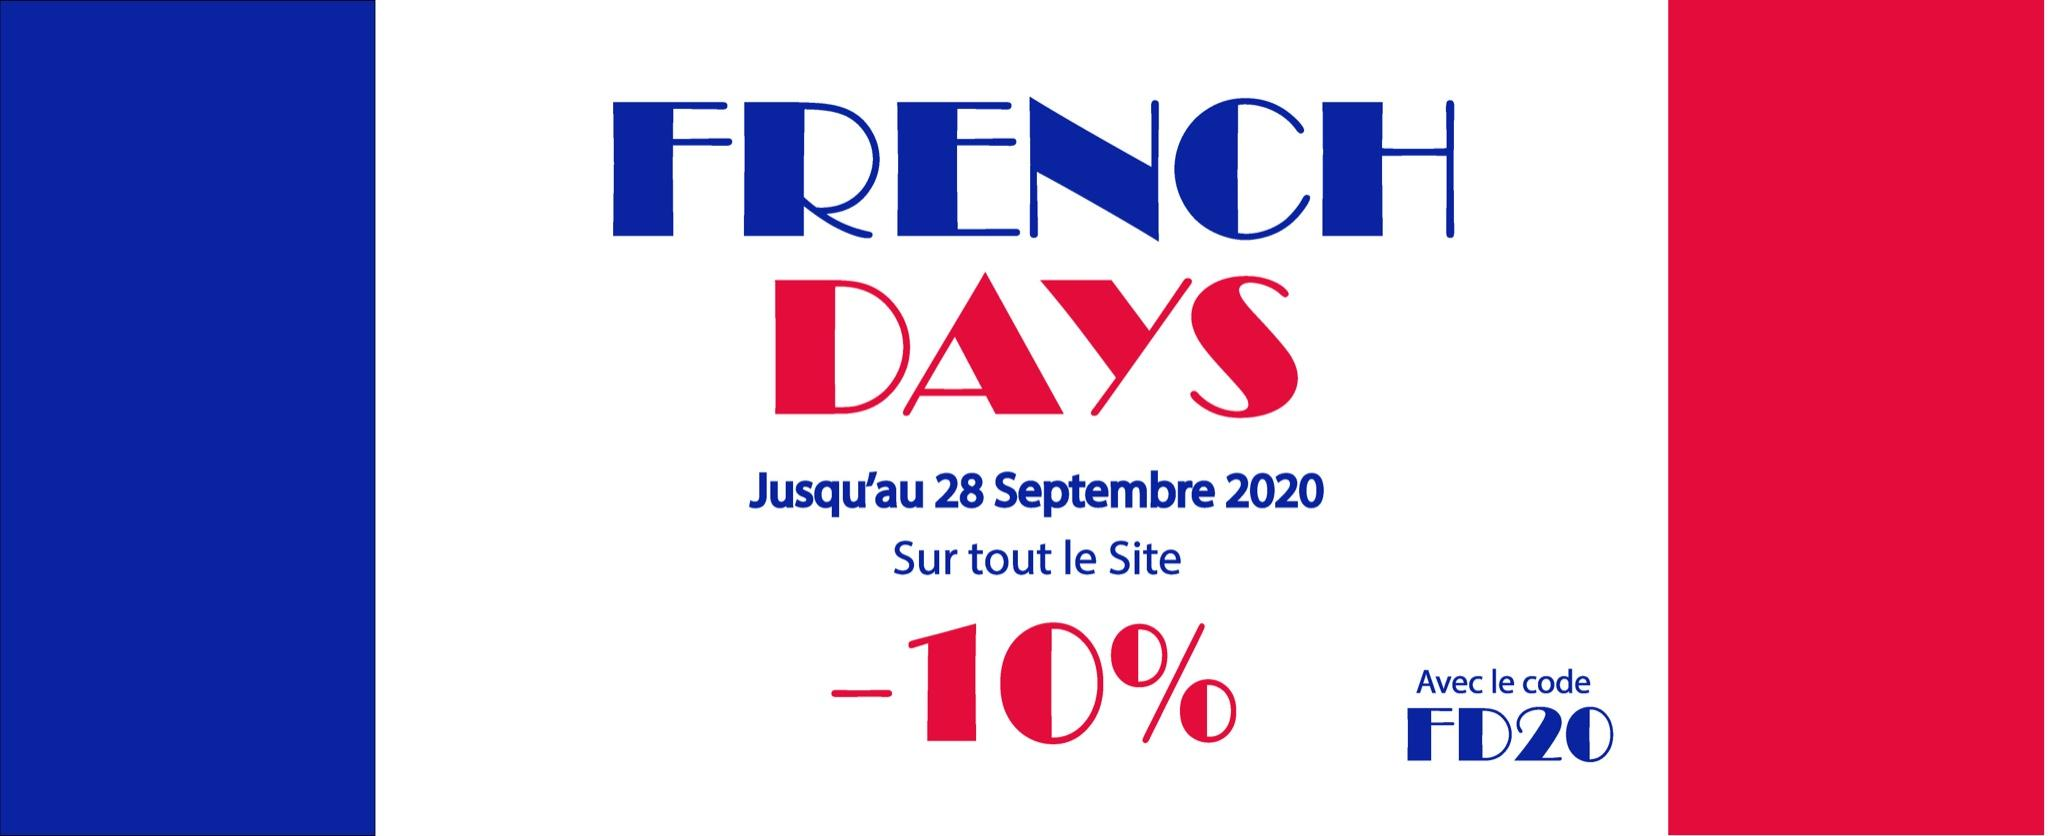 bandeaufrenchdays2020